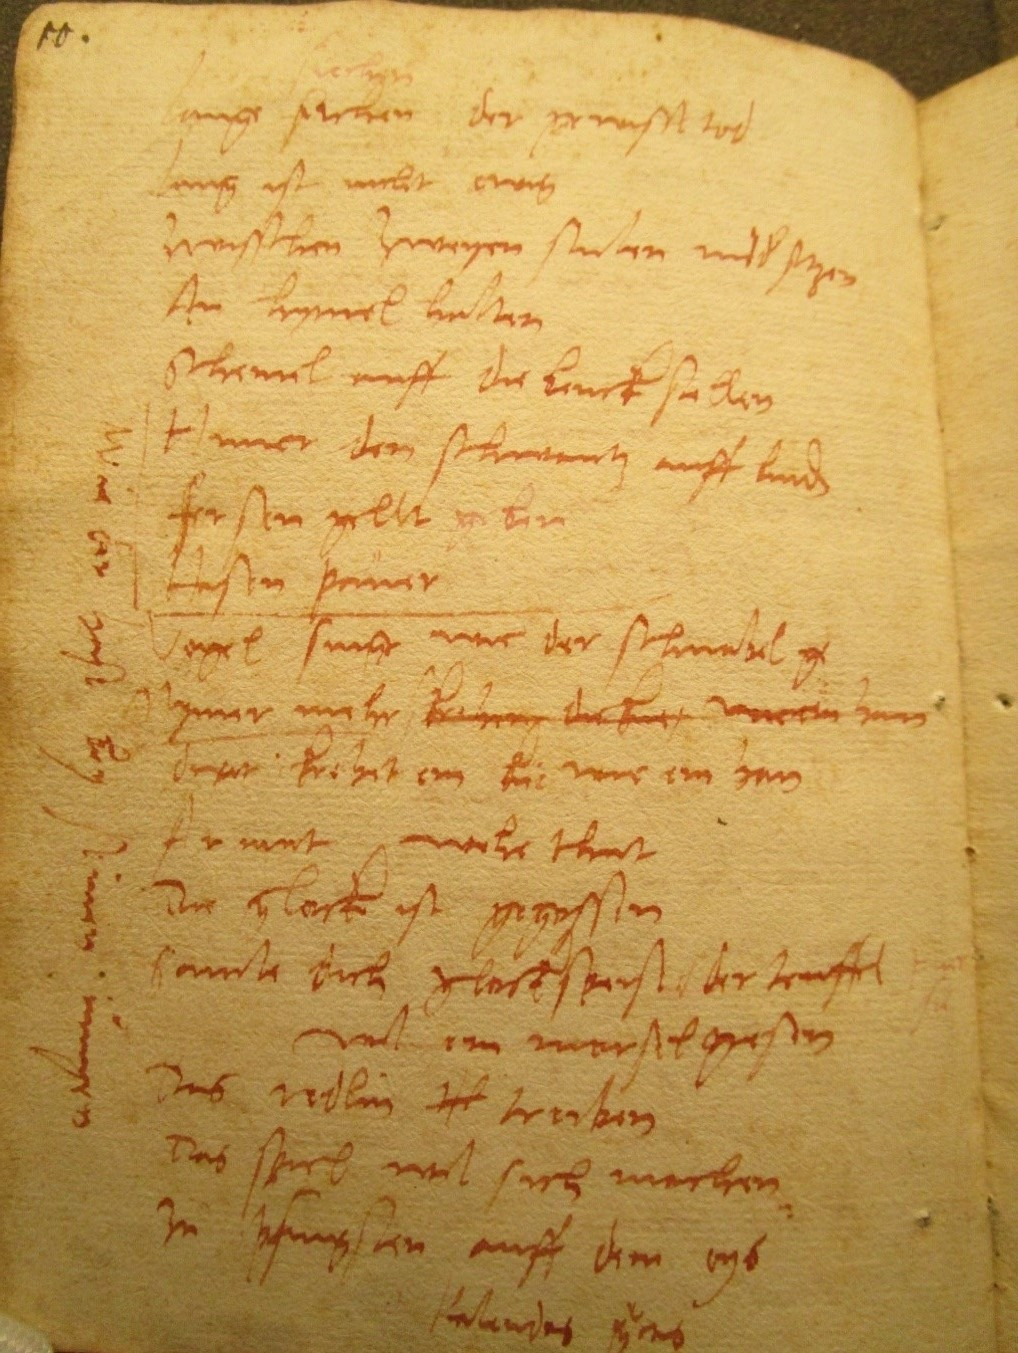 Bodleian Library MS Add. A. 92, p. 10. Photo: Alexander Peplow. Reproduced with permission of the Bodleian Libraries